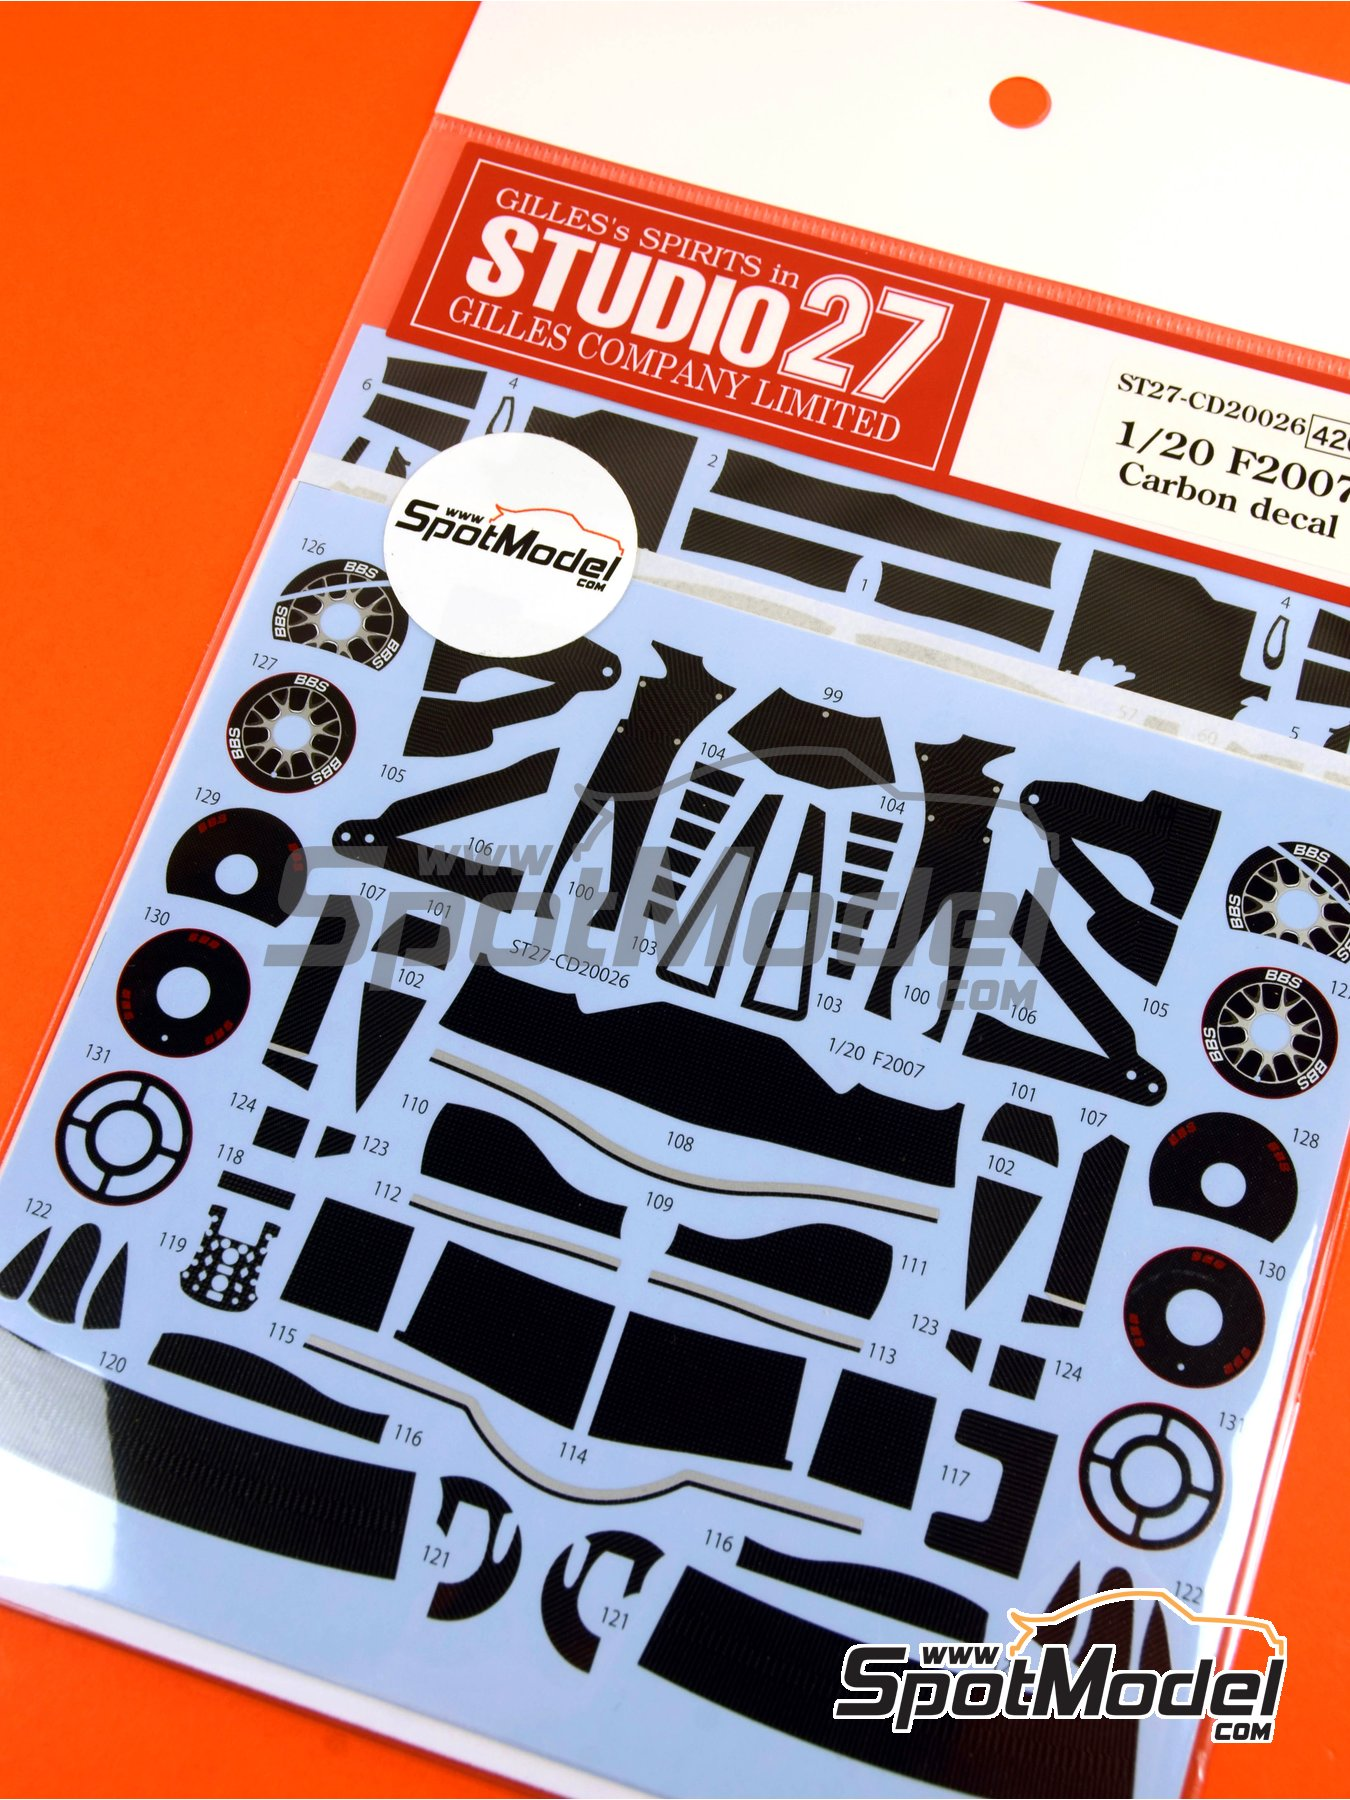 Ferrari F2007 | Carbon fibre pattern decal in 1/20 scale manufactured by Studio27 (ref. ST27-CD20026) image